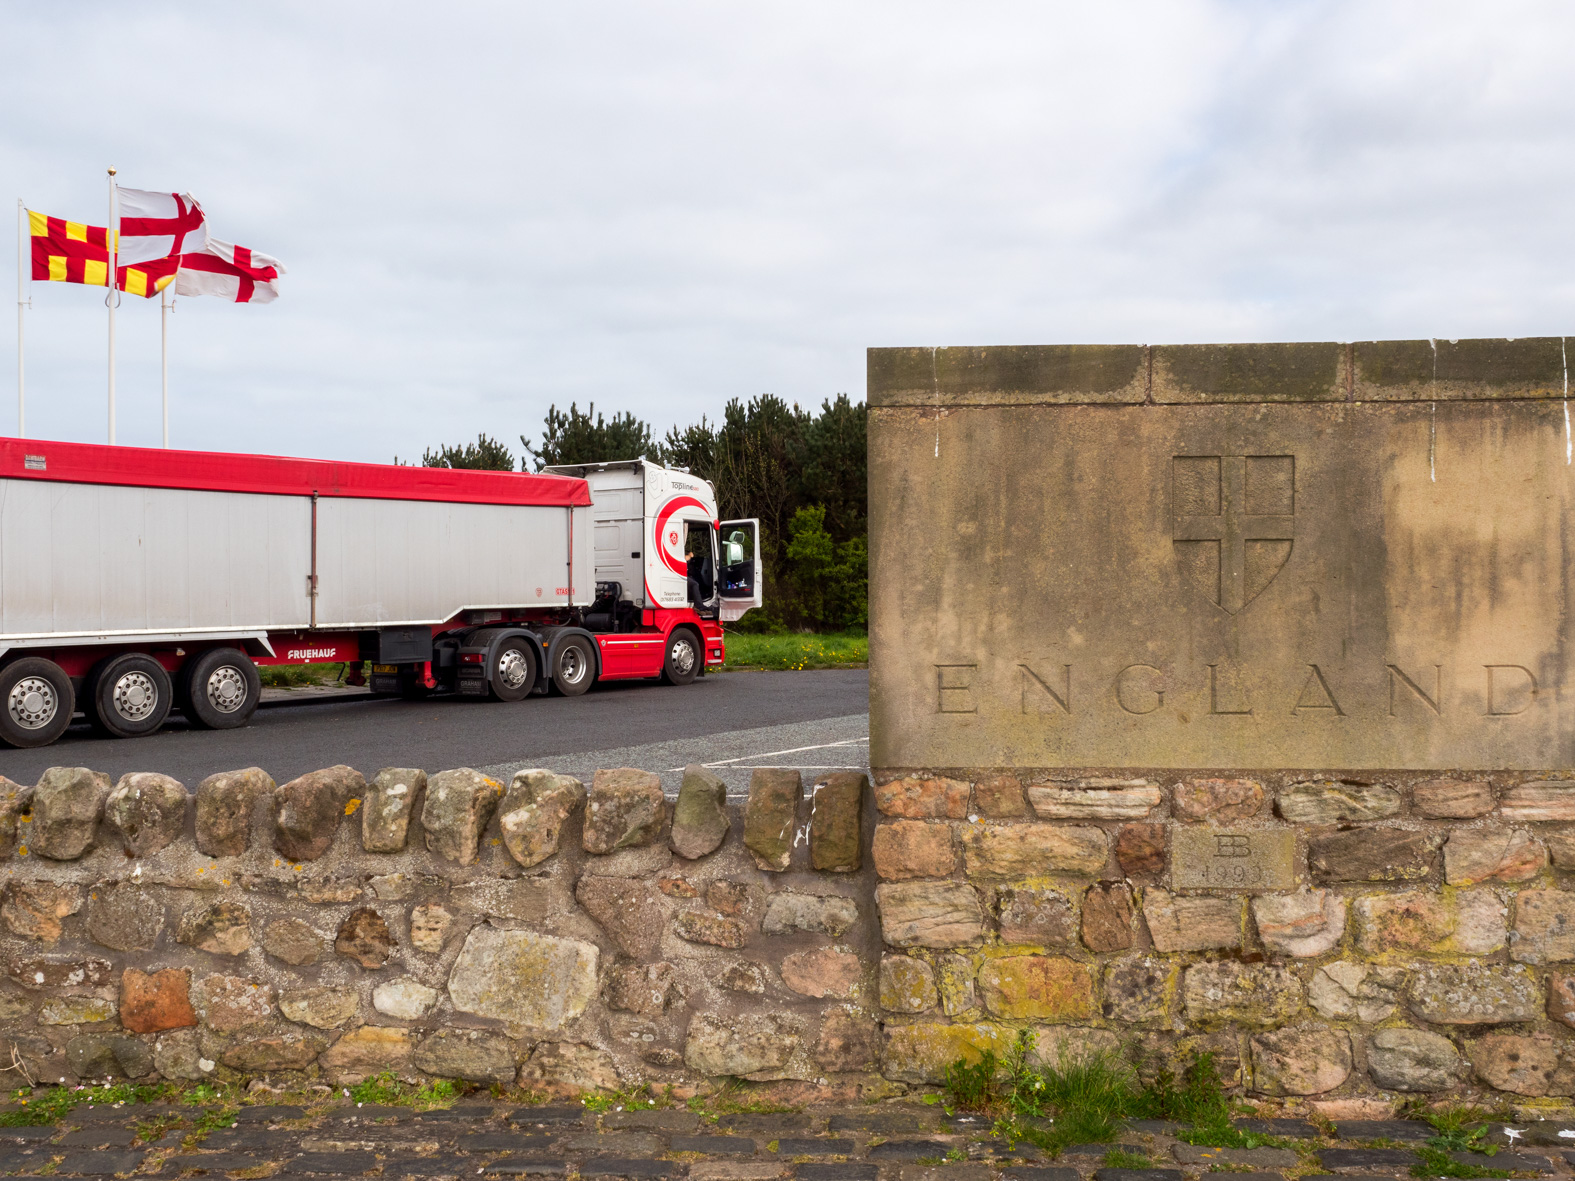 A truck parked at the England/Scotland border.